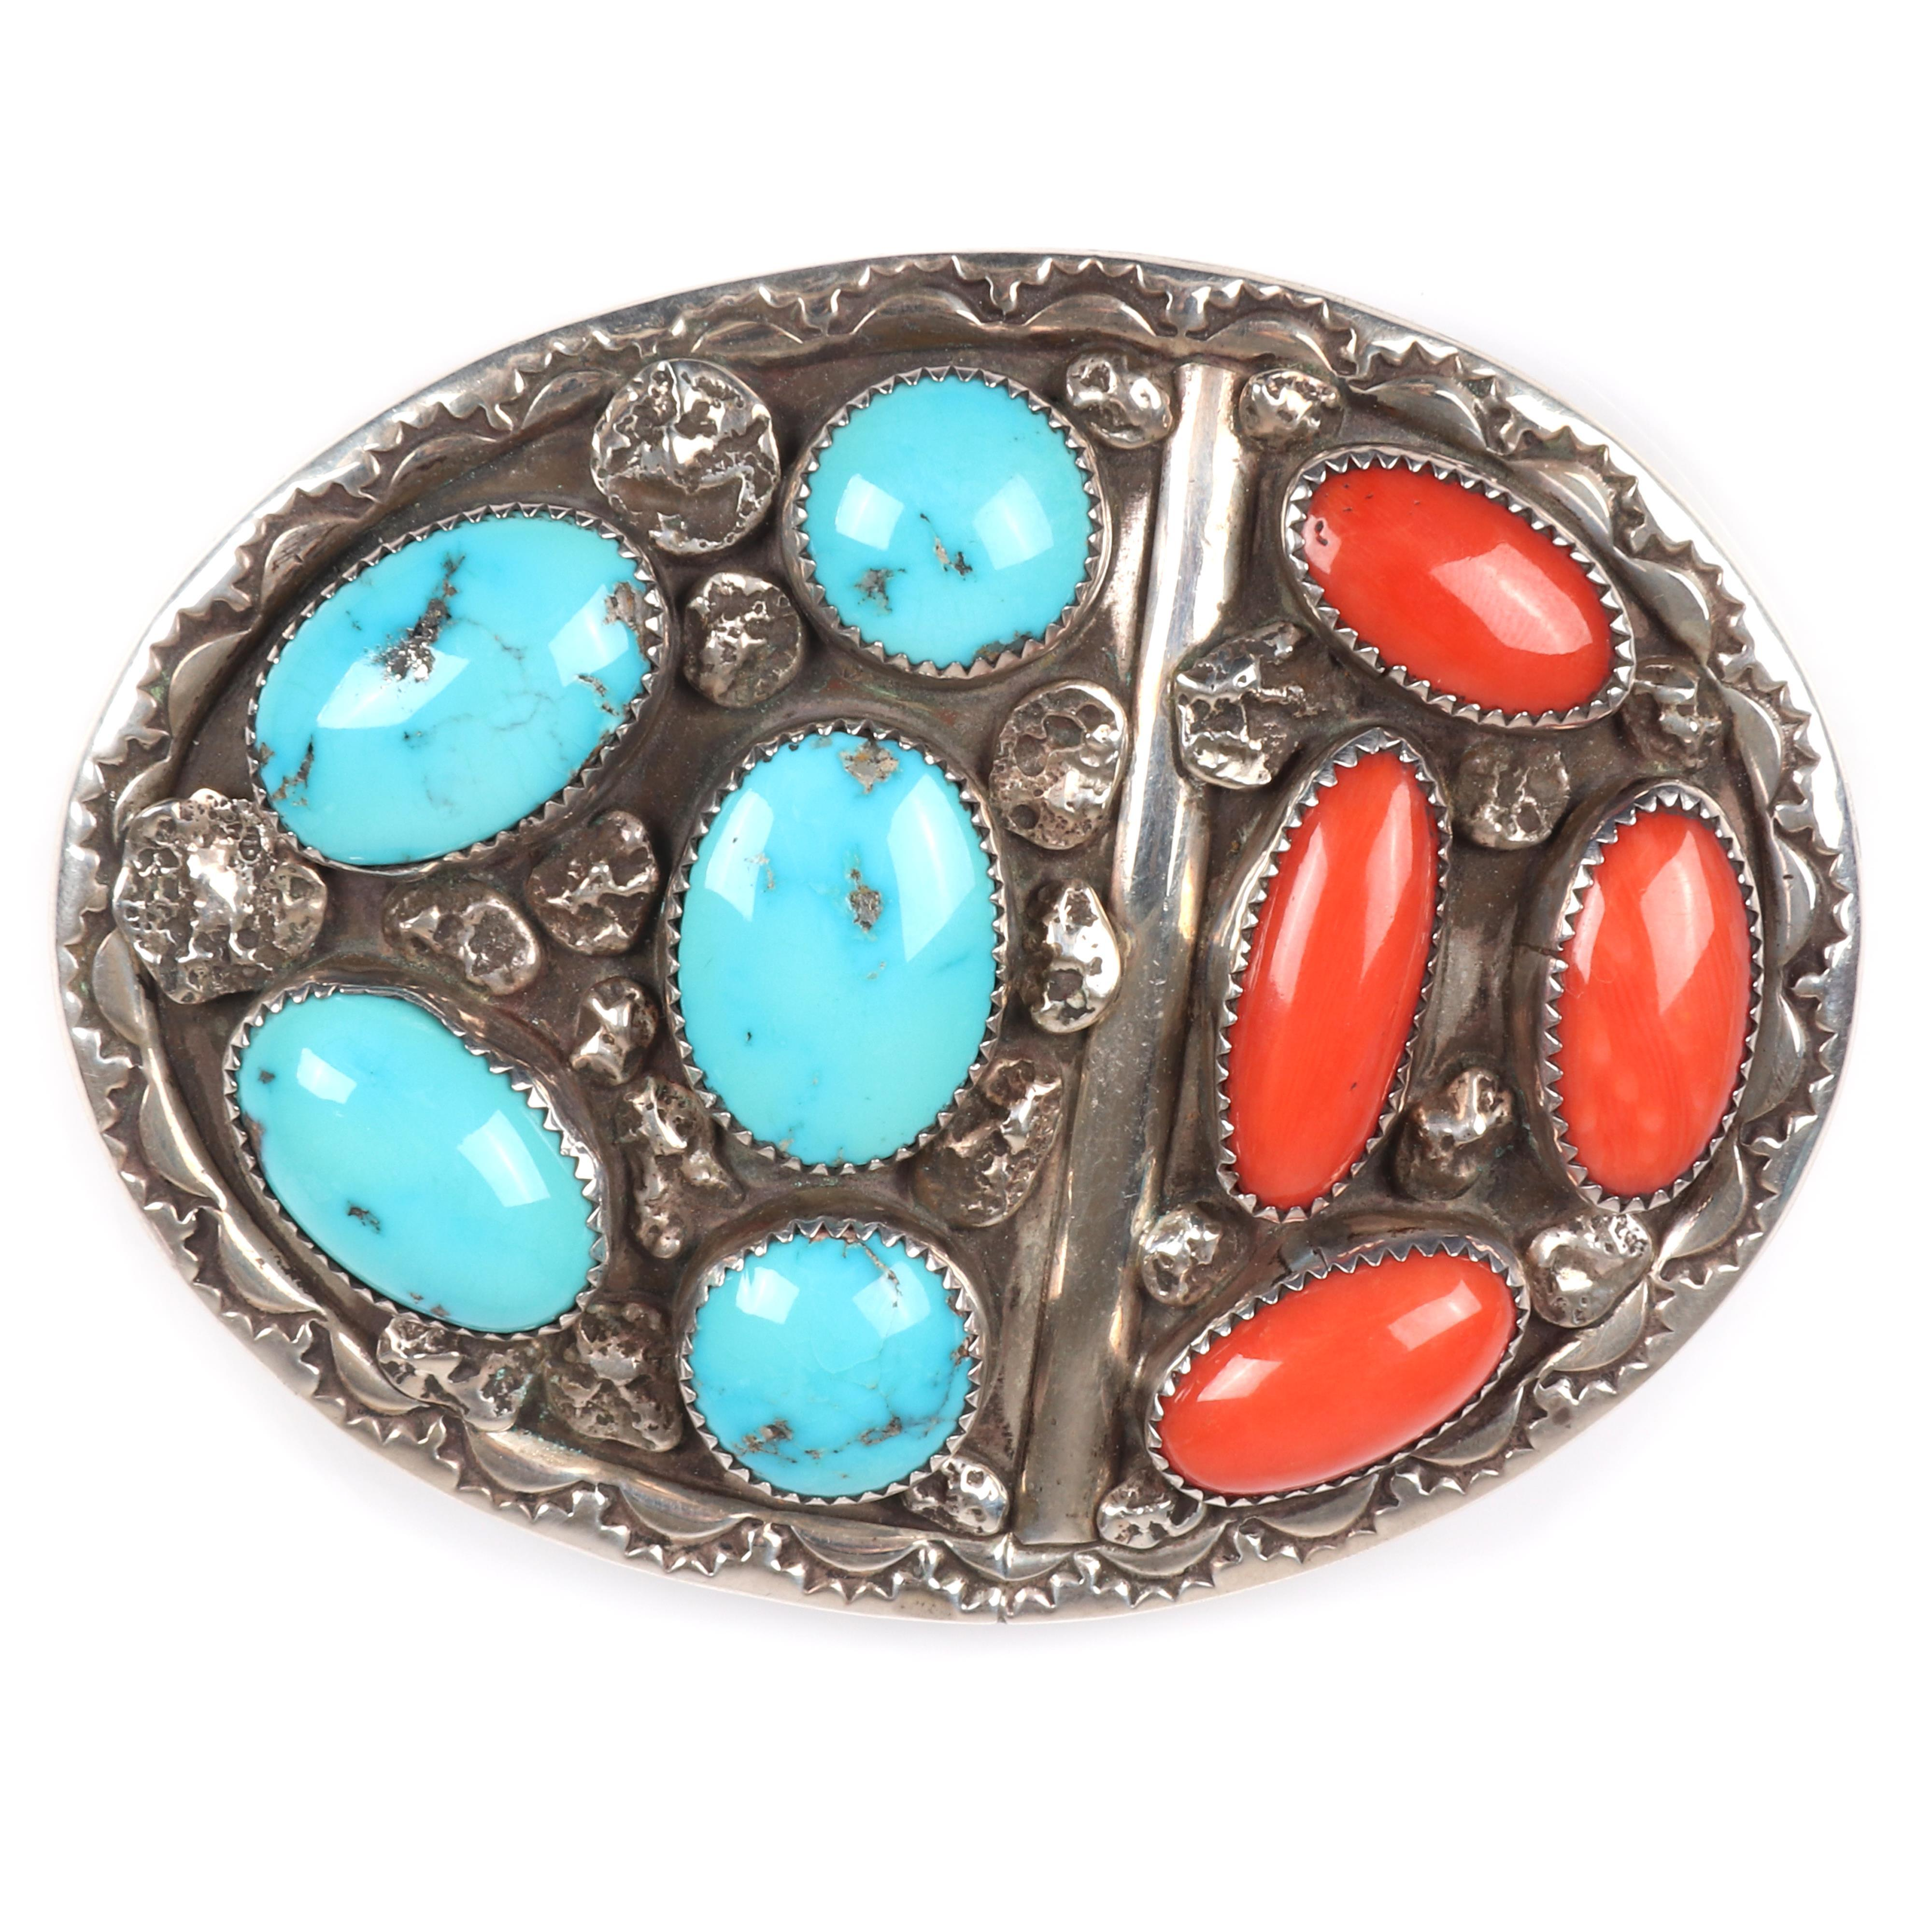 """Vintage Navajo Native American sterling silver belt buckle with large polished turquoise and red coral cabochons and stamped metal work and overlay, inscribed J. S. Navajo. 3 1/4""""H x 2 3/4""""W"""